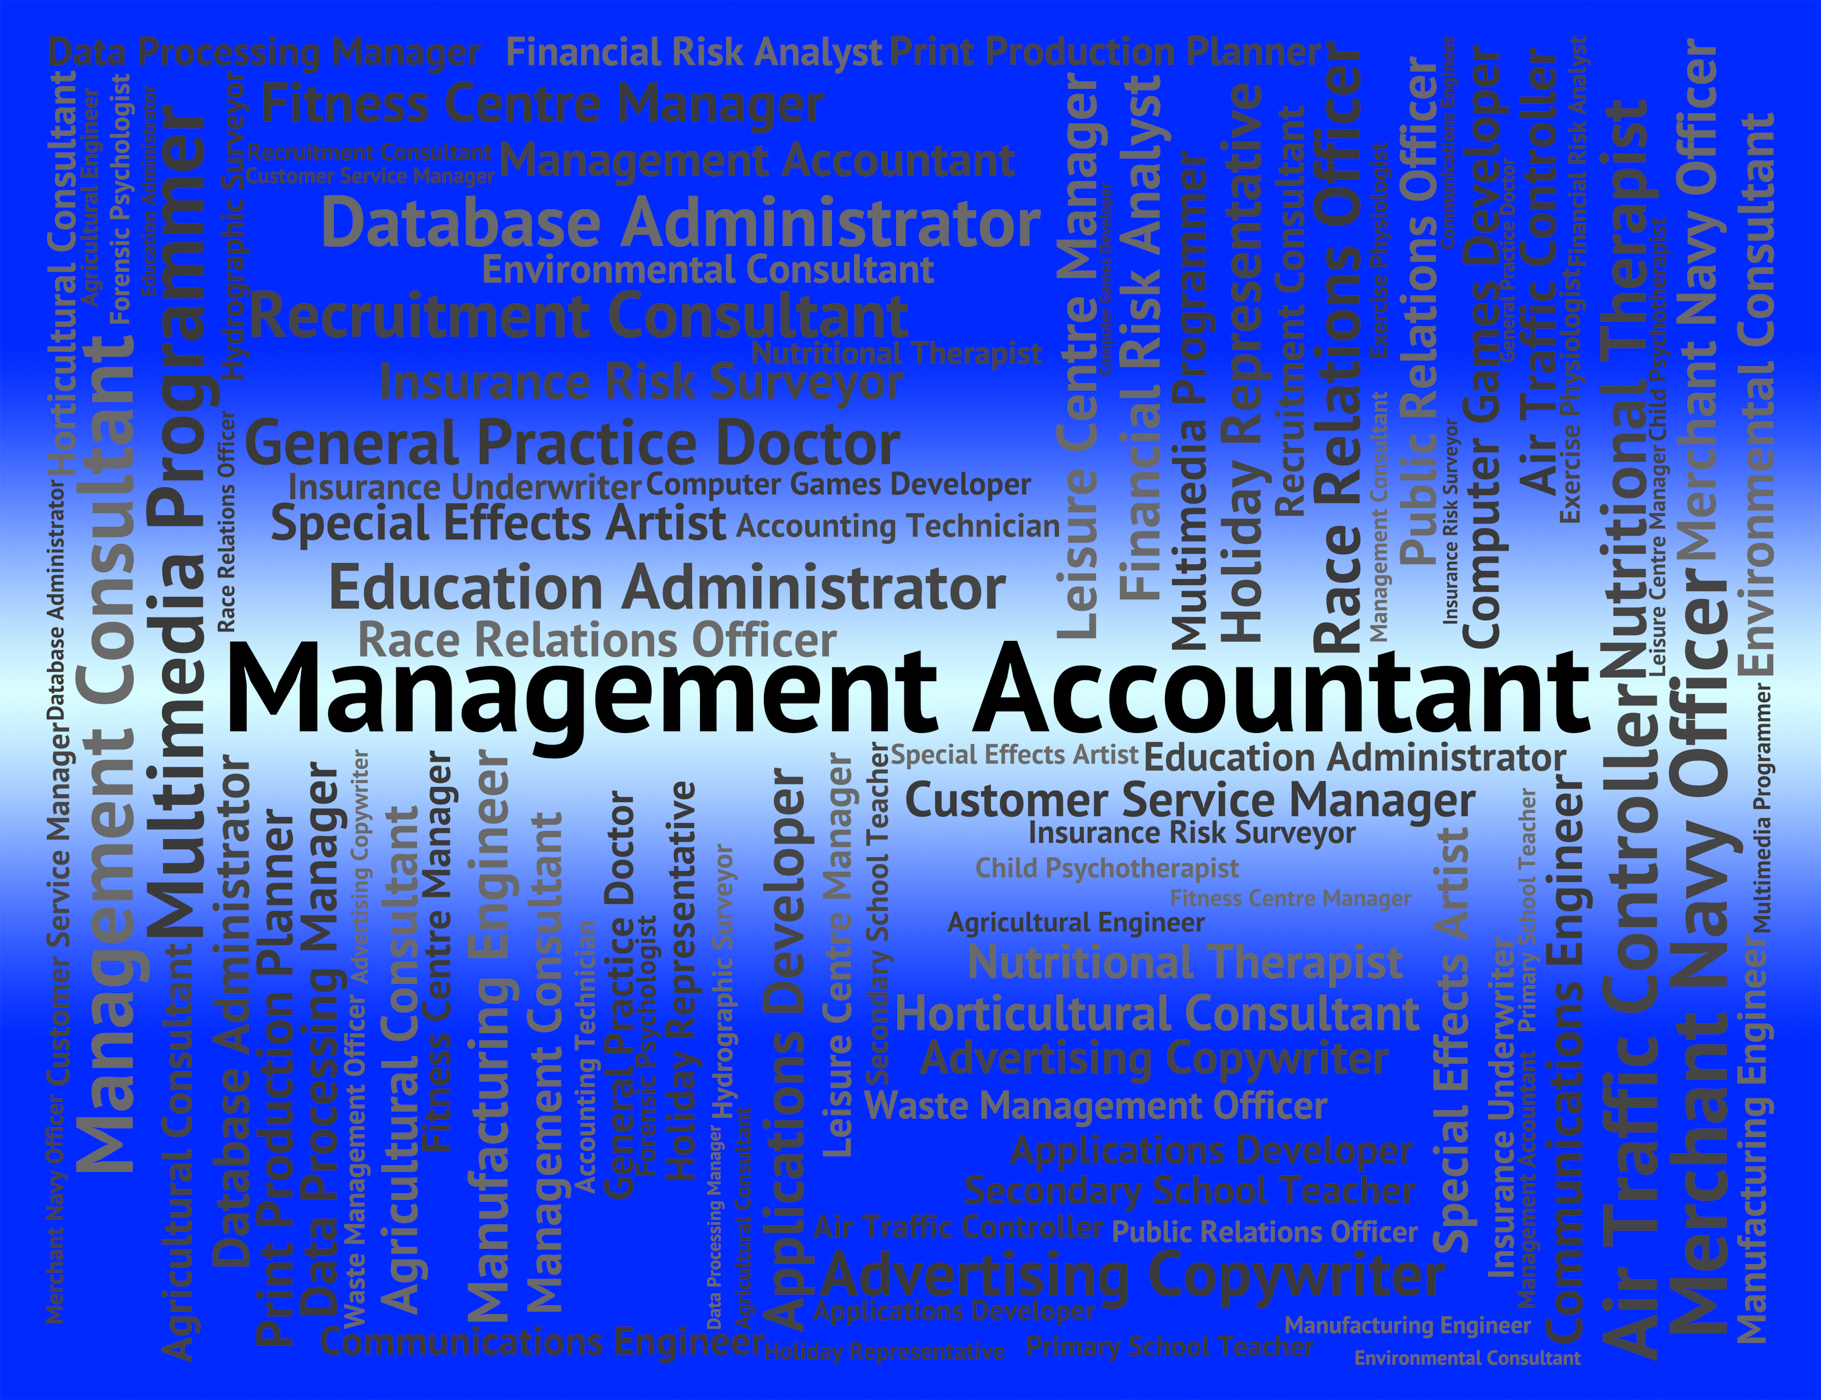 Management accountant indicates balancing the books and accounta photo